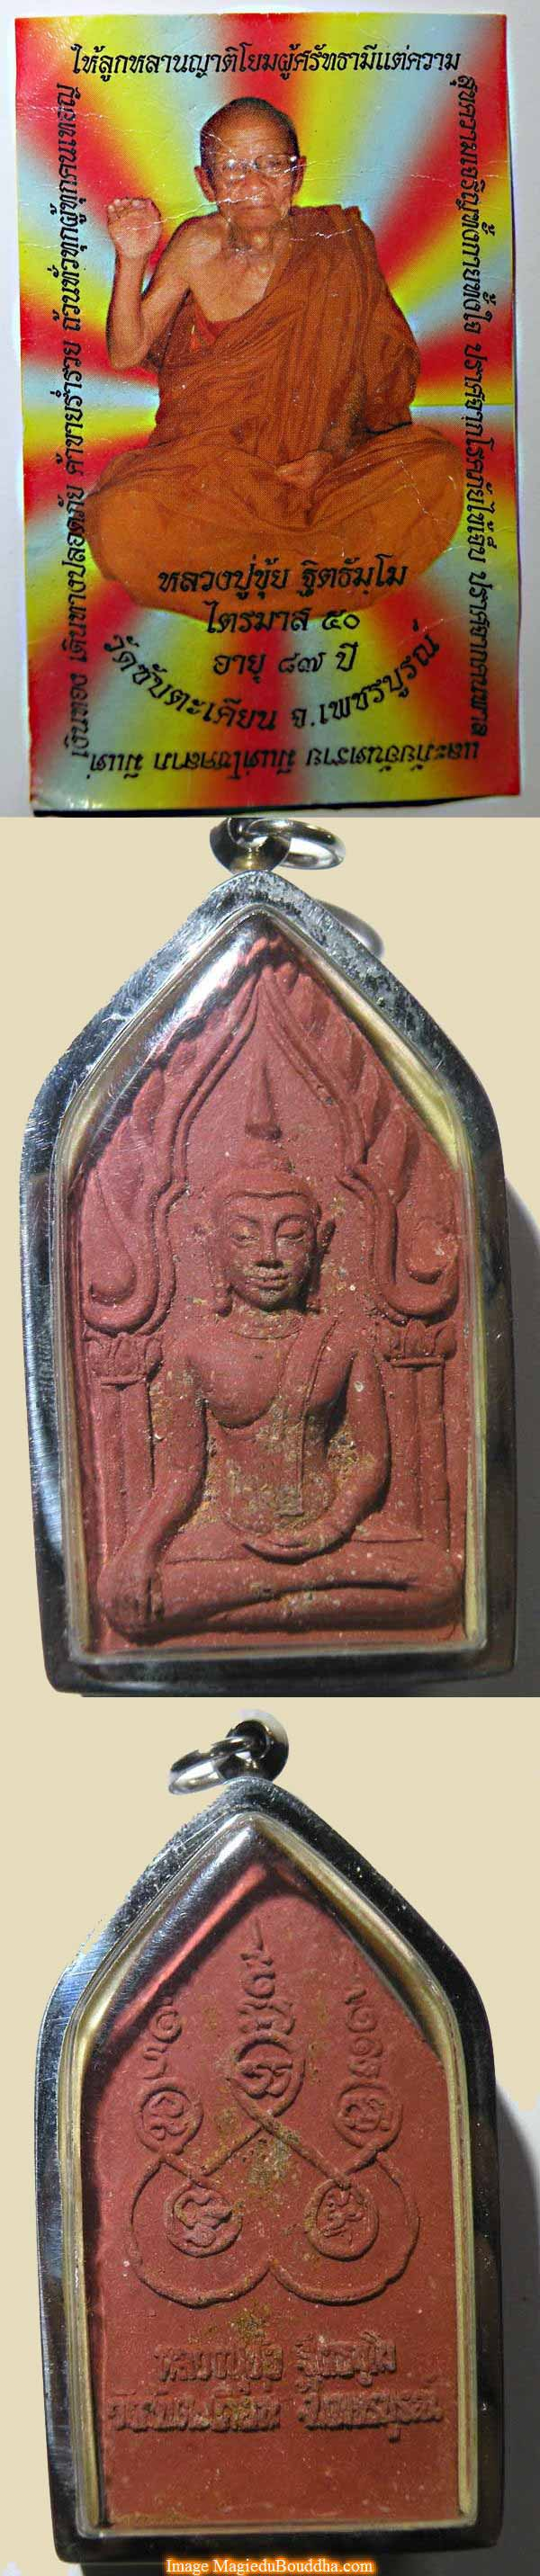 amulette charme amour phra khunpen luang phor kui